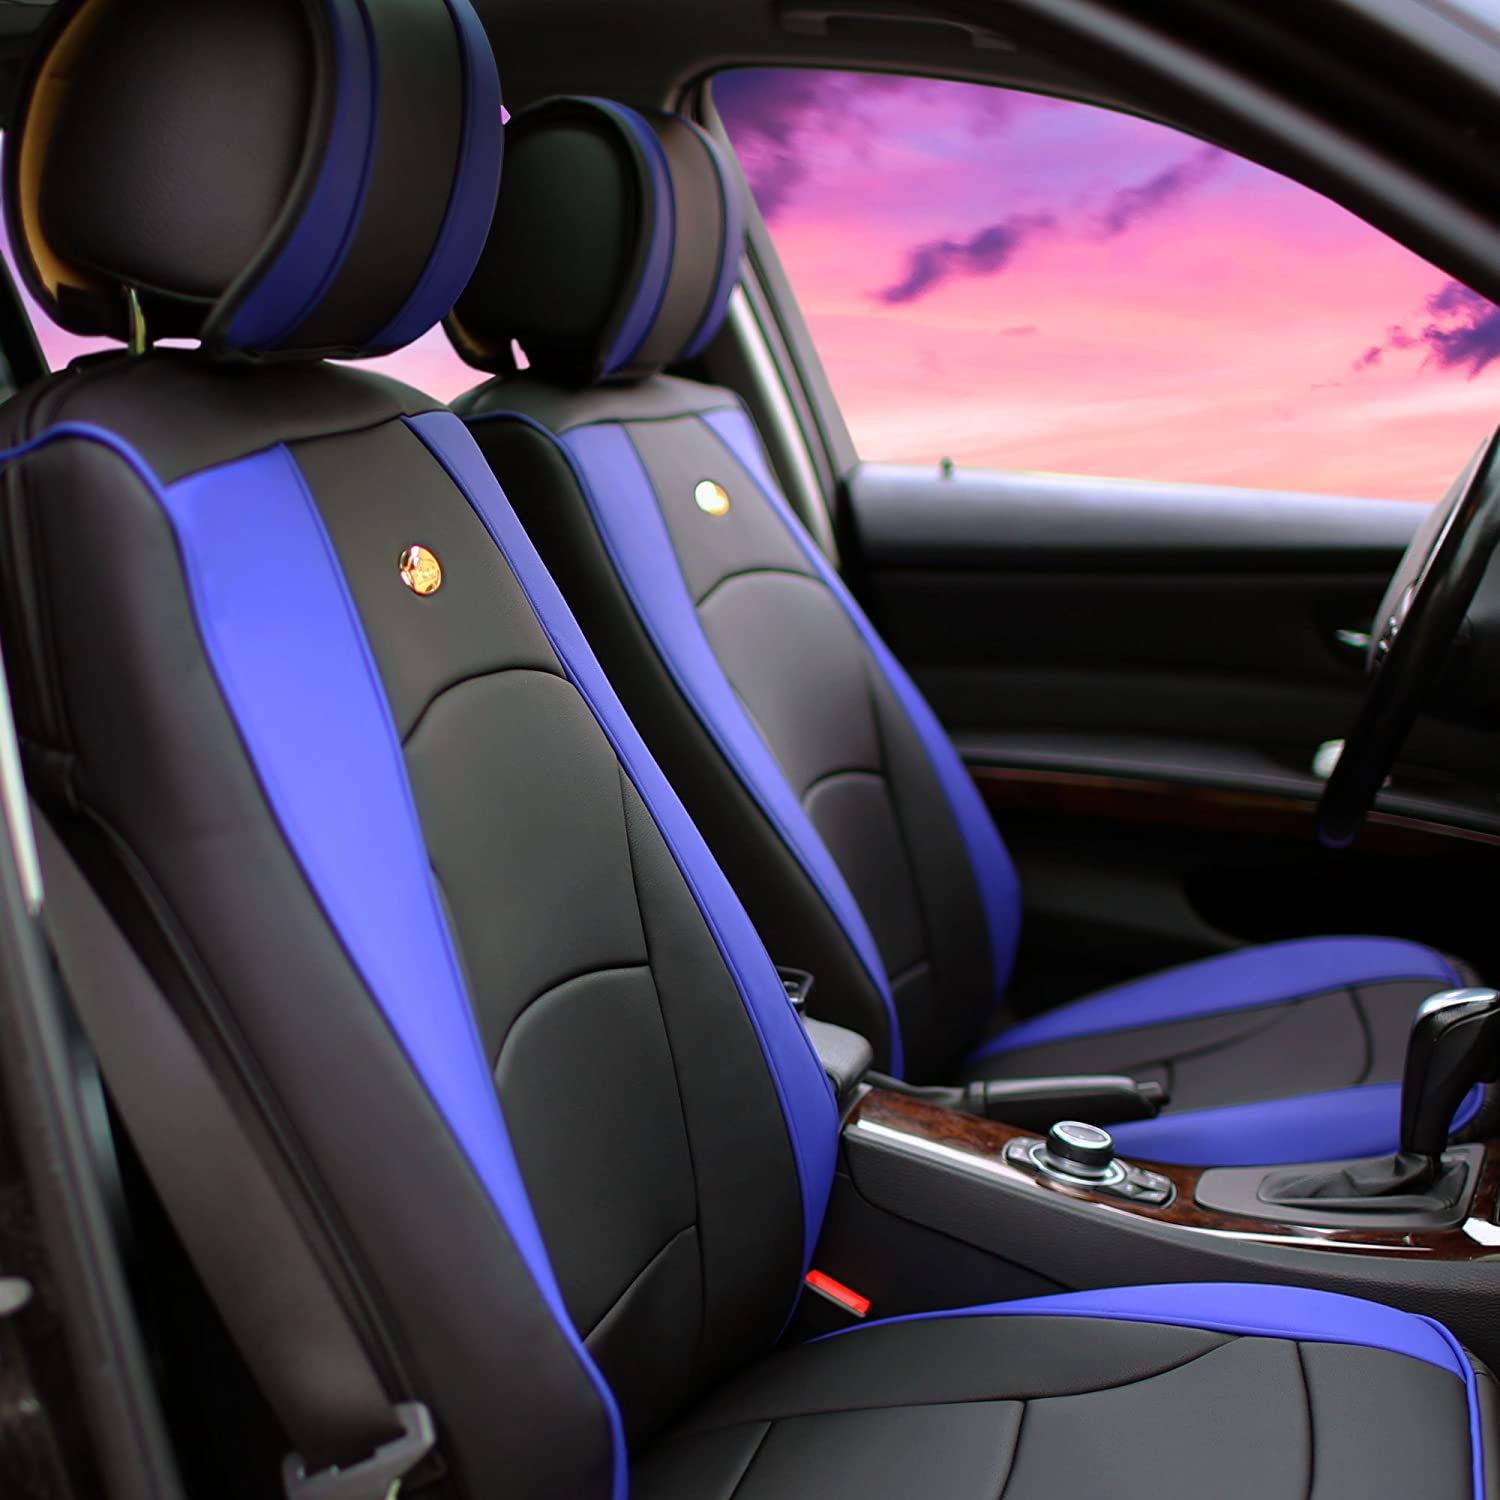 FH Group PU205BLUEBLACK102 PU205102 Ultra Comfort Leatherette Front Seat Cushions (Airbag Compatible) Blue and Black